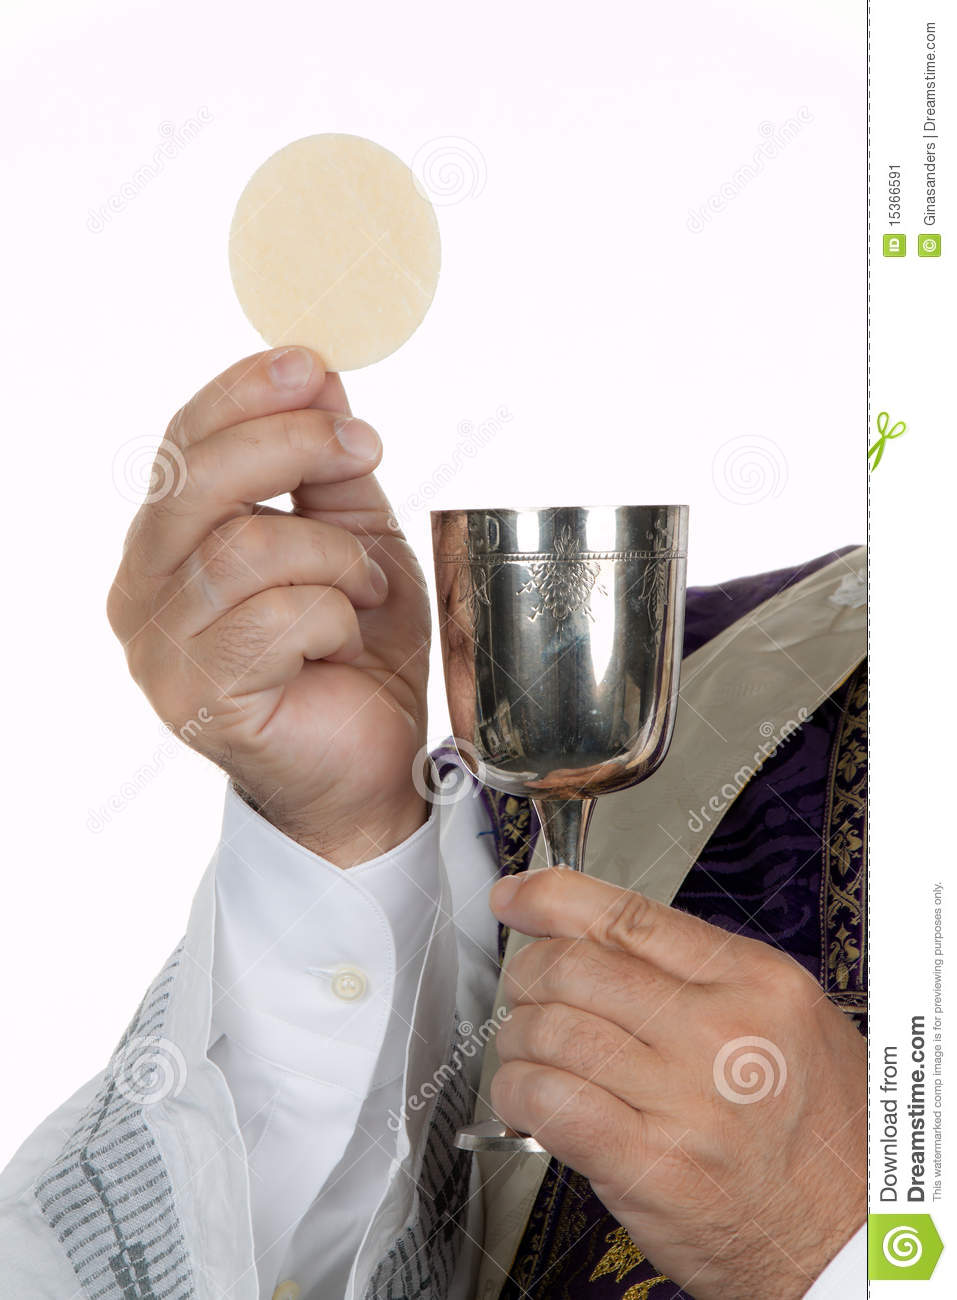 Catholic priest with chalice and host at Communion